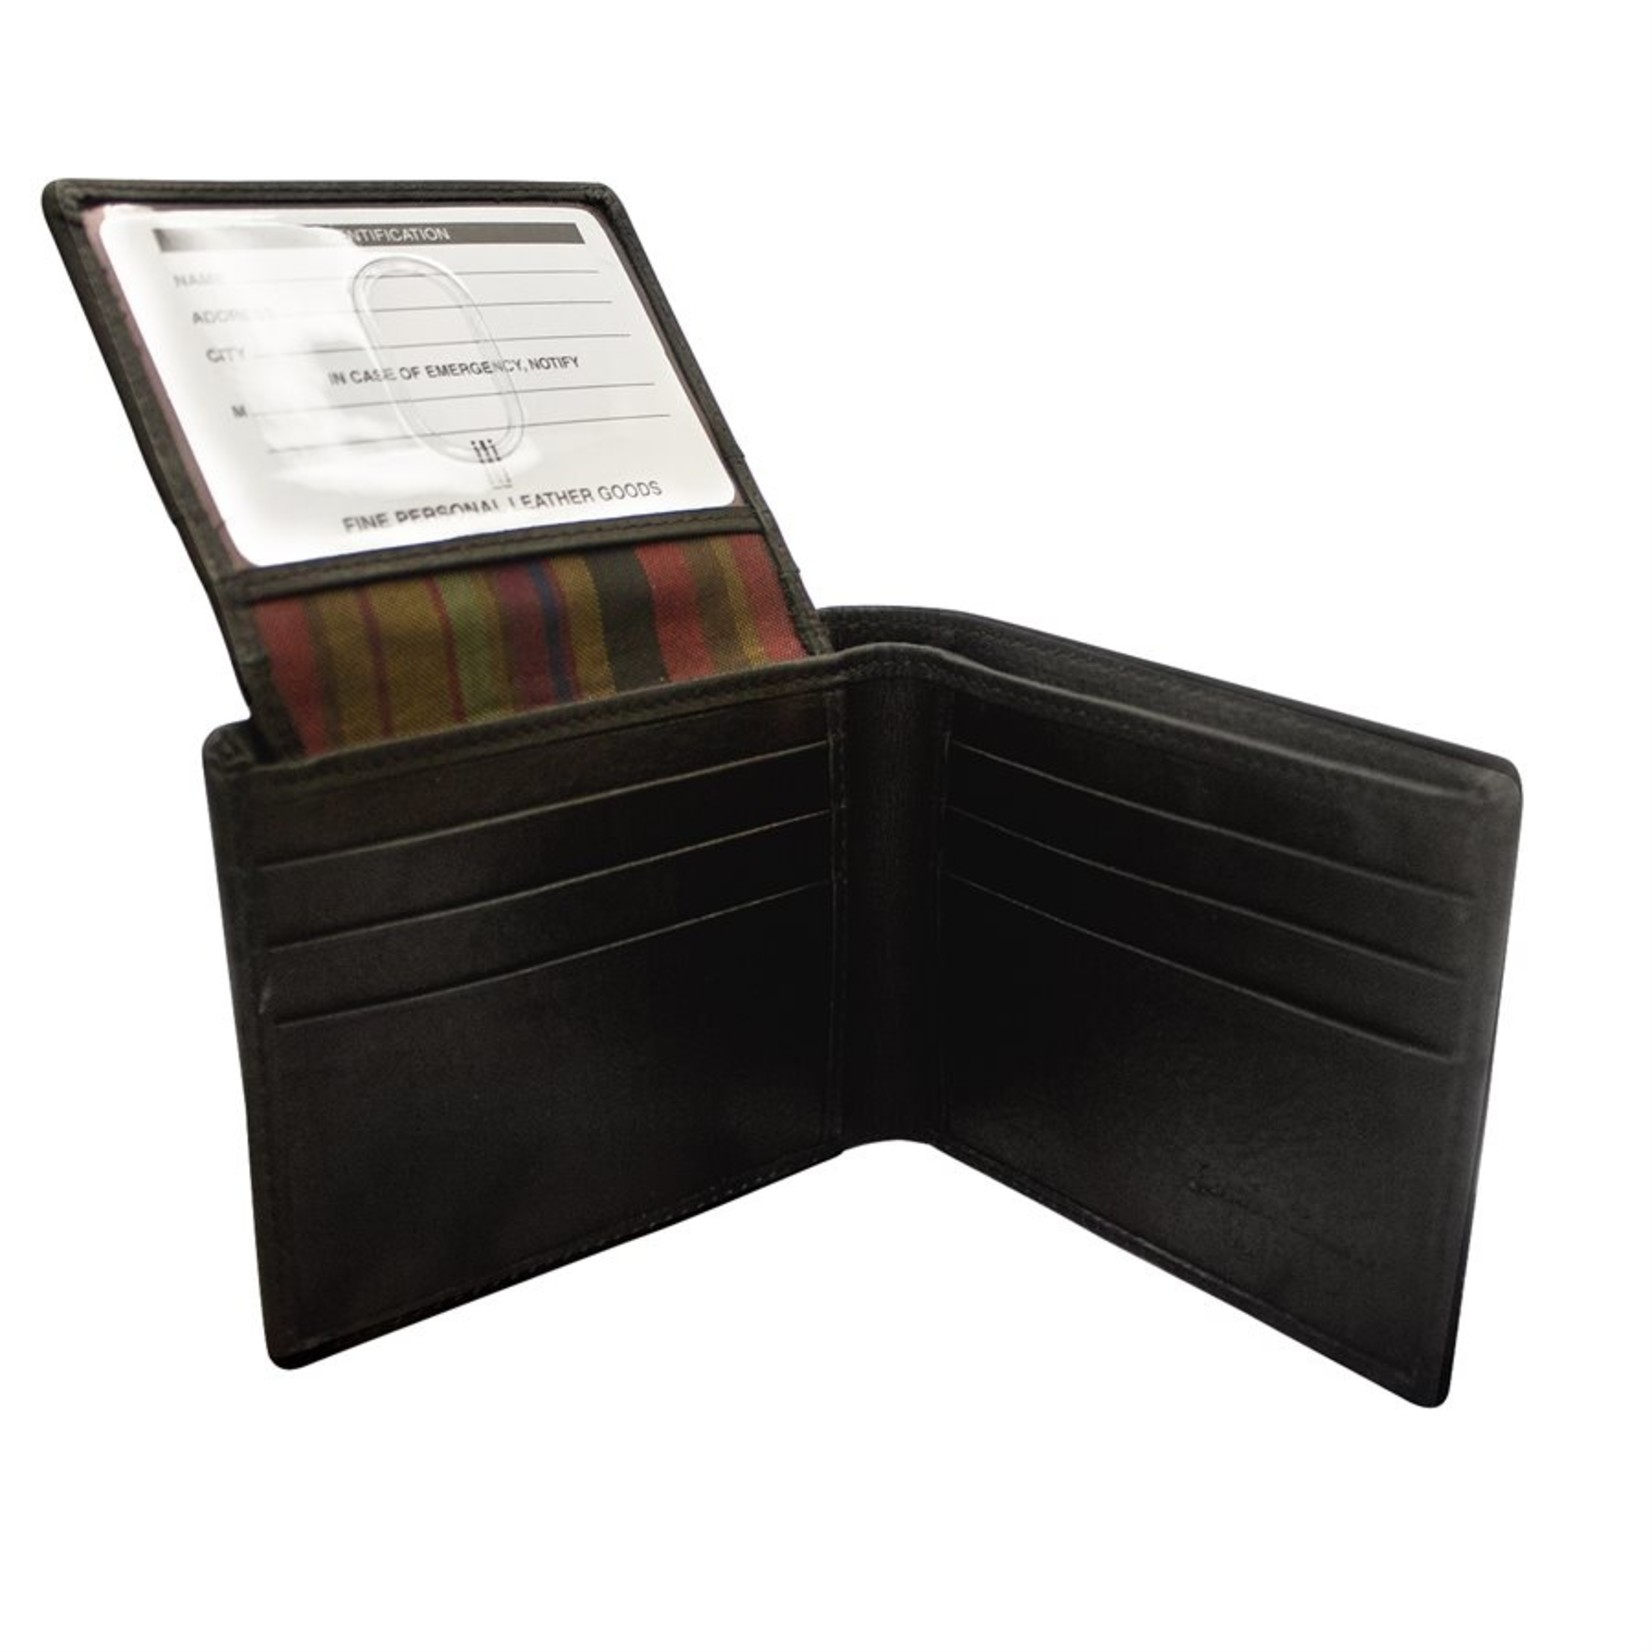 Leather Handbags and Accessories 7151 Black - RFID Men's Wallet